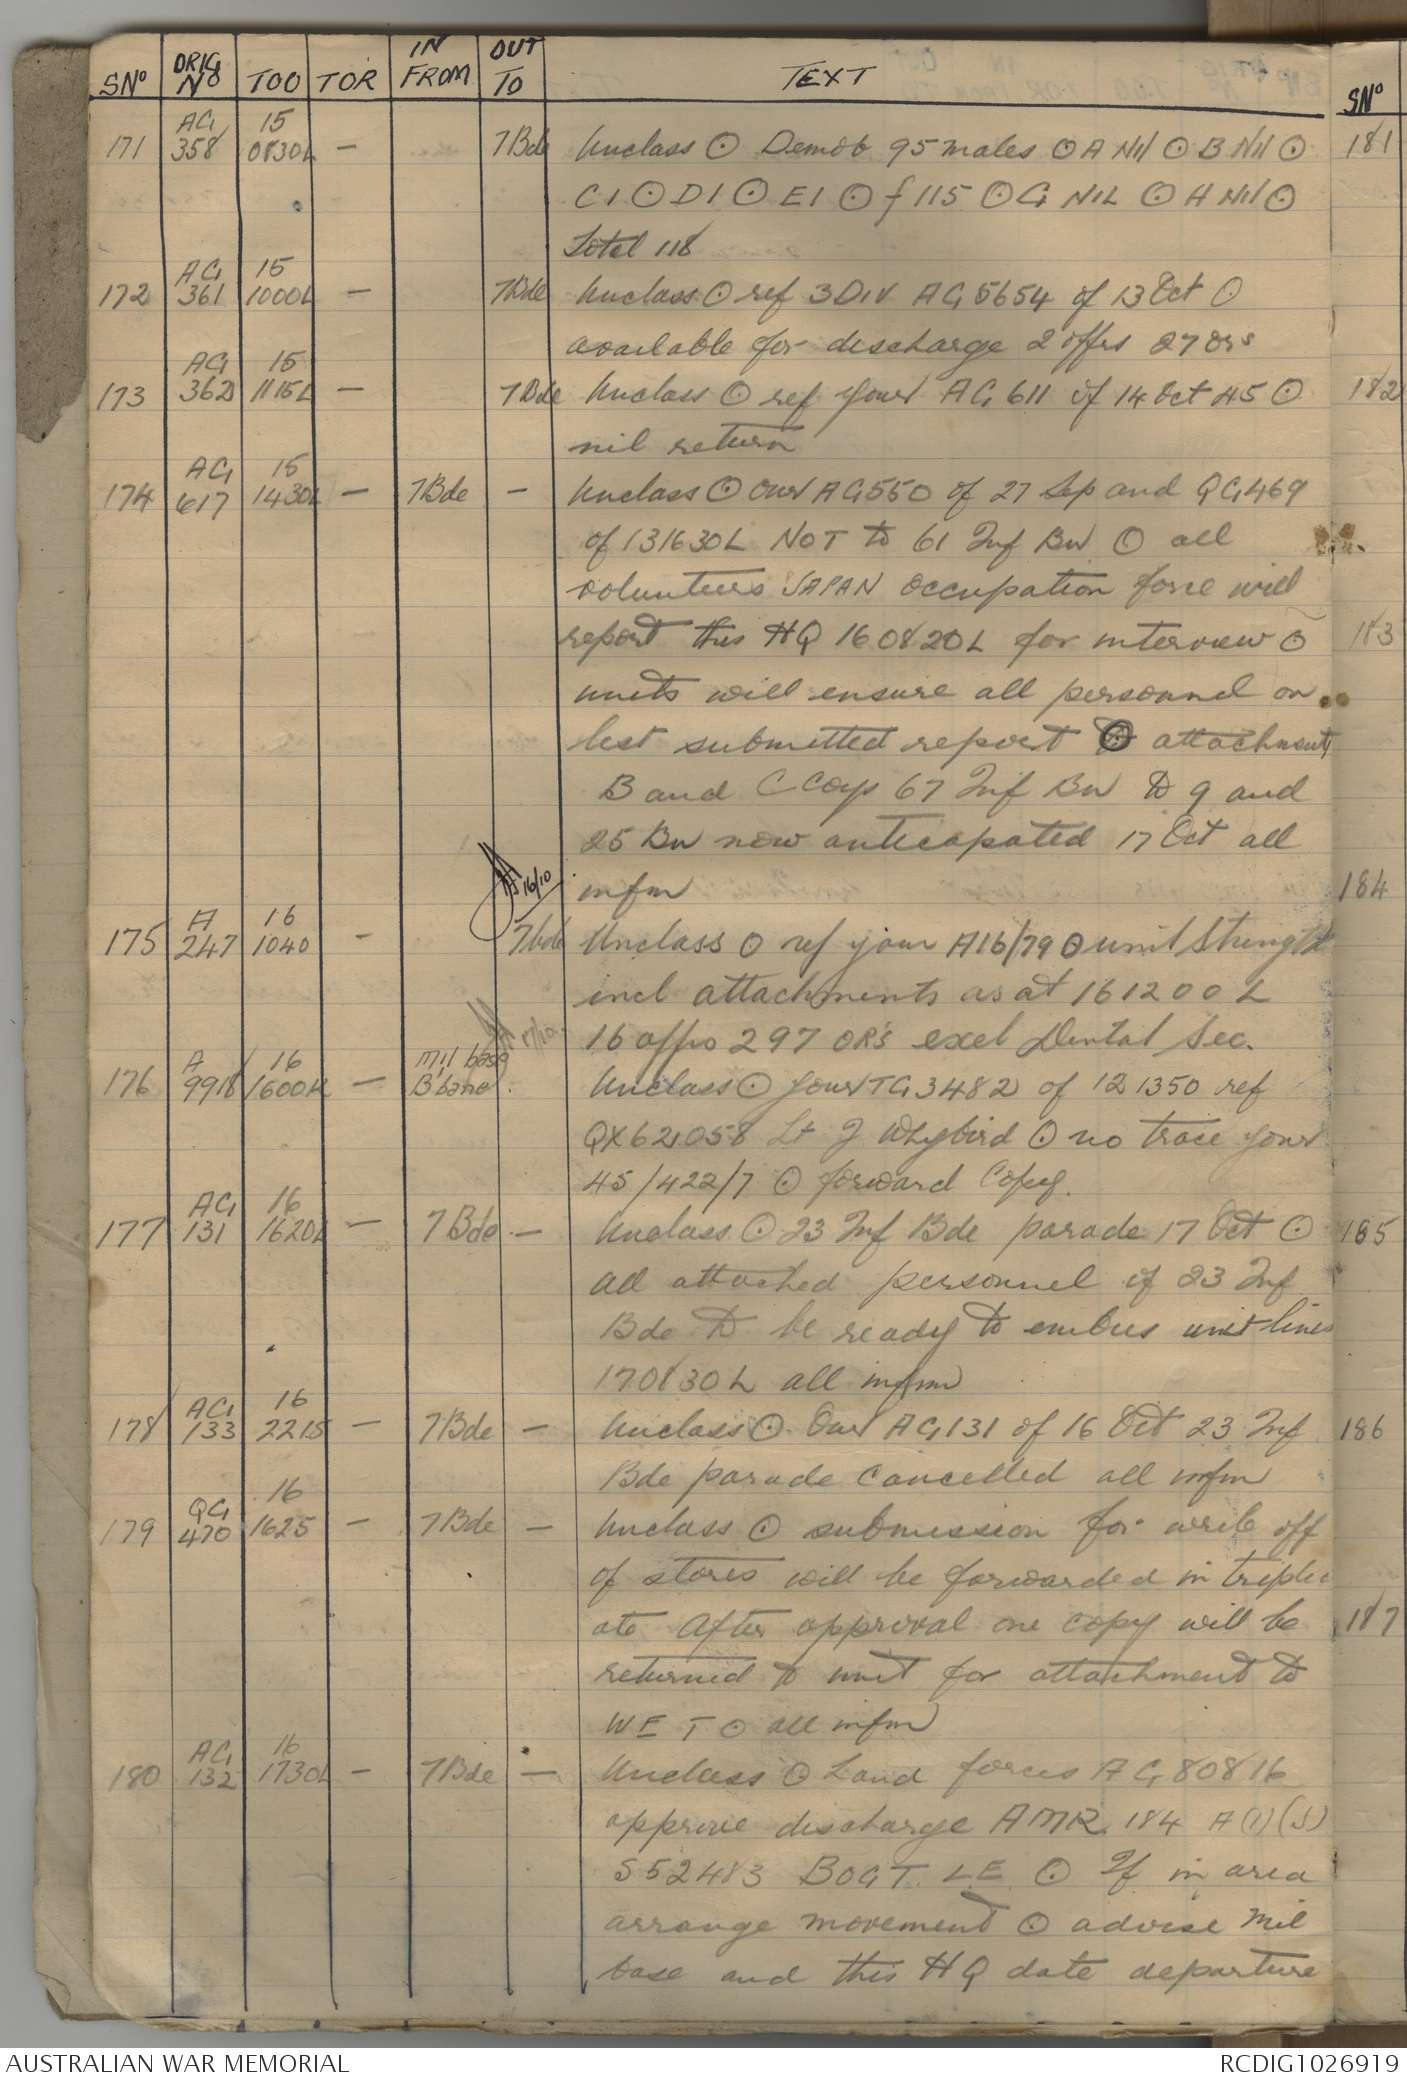 AWM52 8/3/96/18 - 1945, Log Diary, part 2 of 3   The